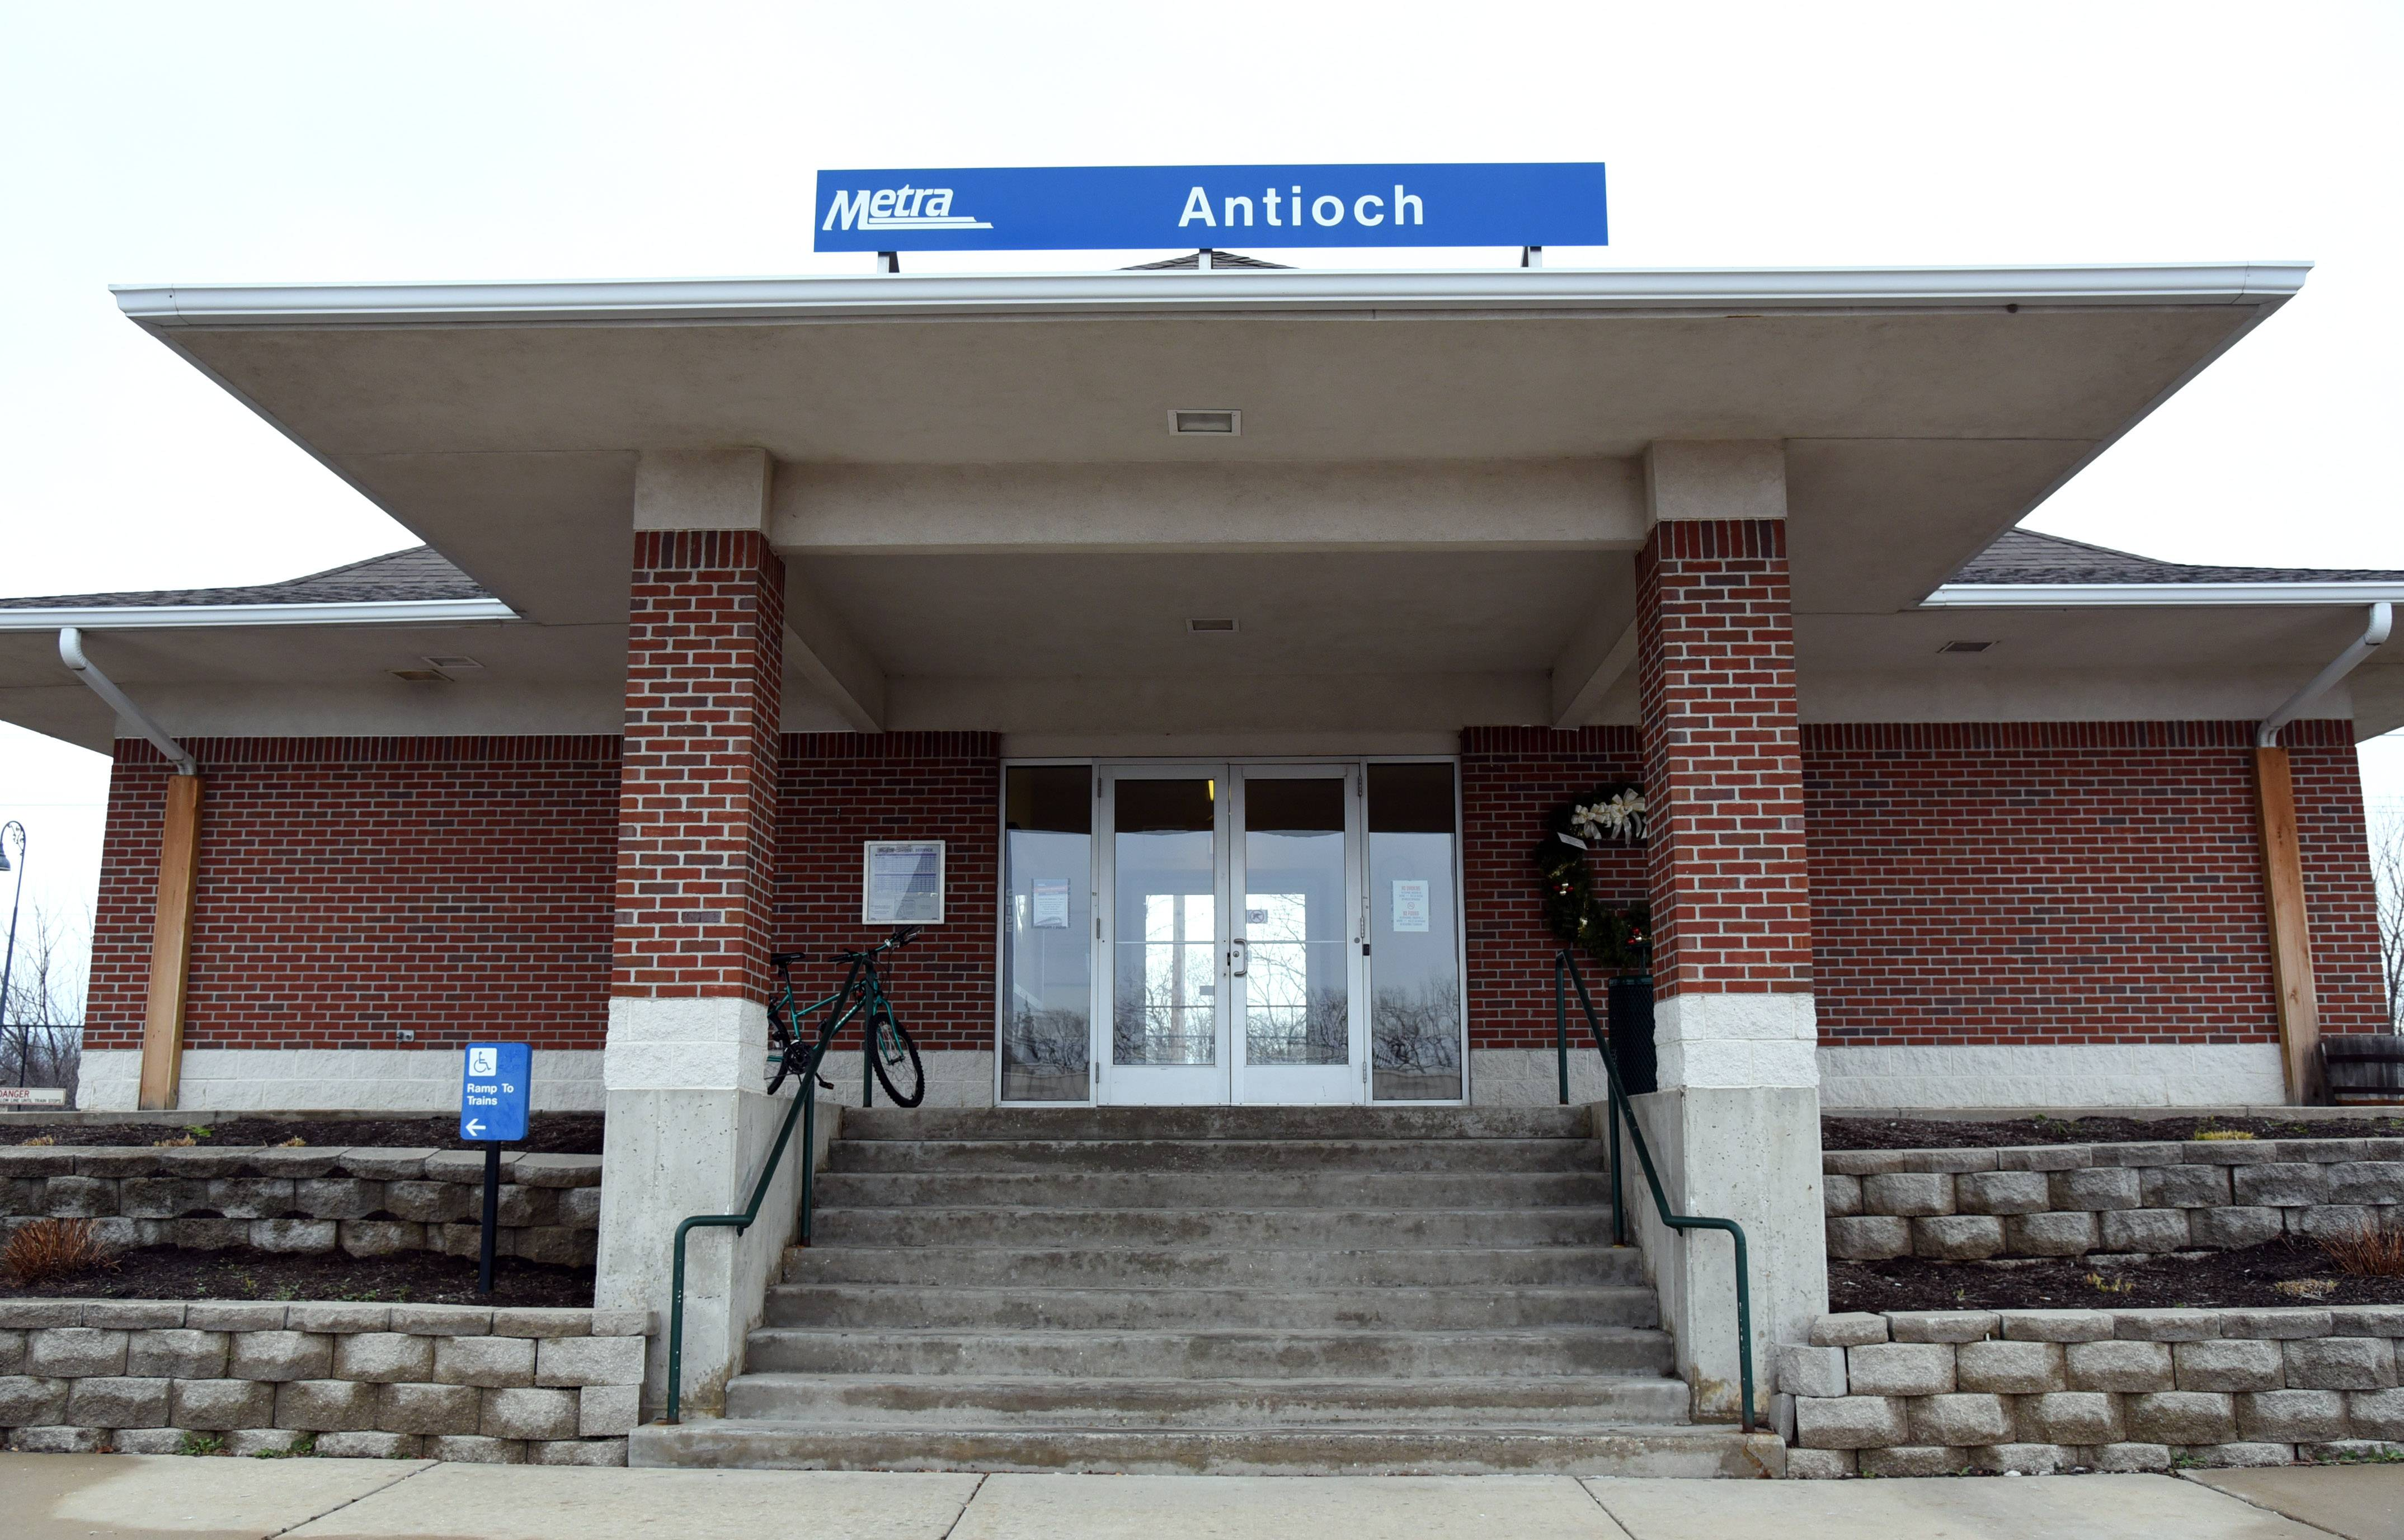 Metra is beginning changes to its fare structure that include price breaks for riders to Chicago from some of the railroad's far-out stations like Antioch.